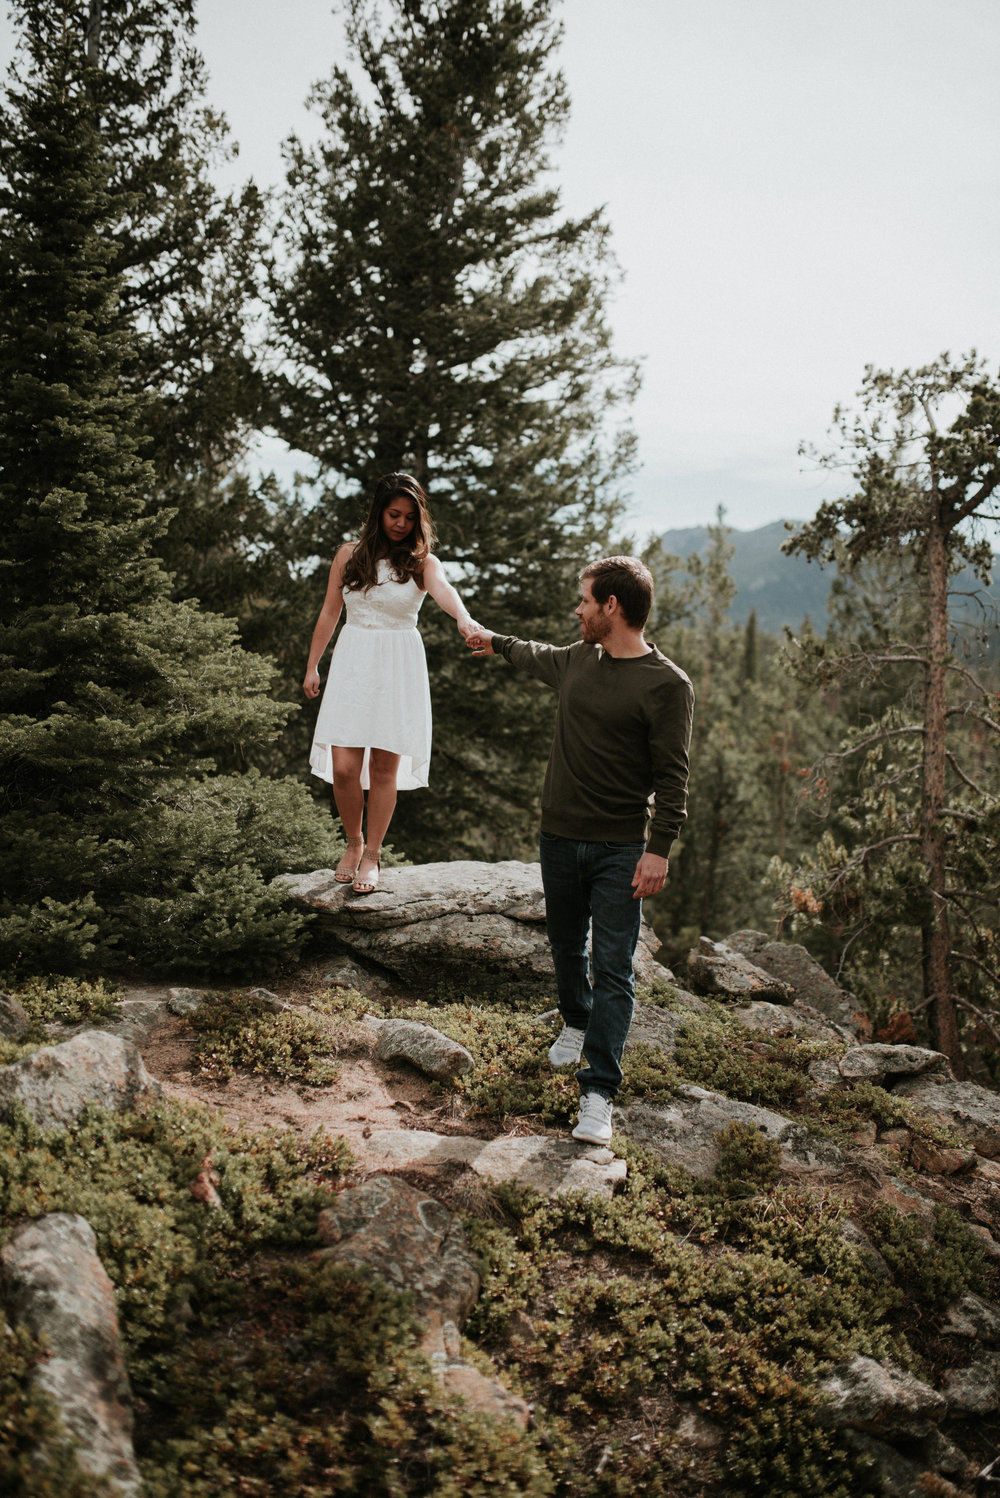 Zach&Rosalie Rocky Mountain National Park Engagement Denver Colorado Rocky Mountain Wedding Photographer00022.jpg